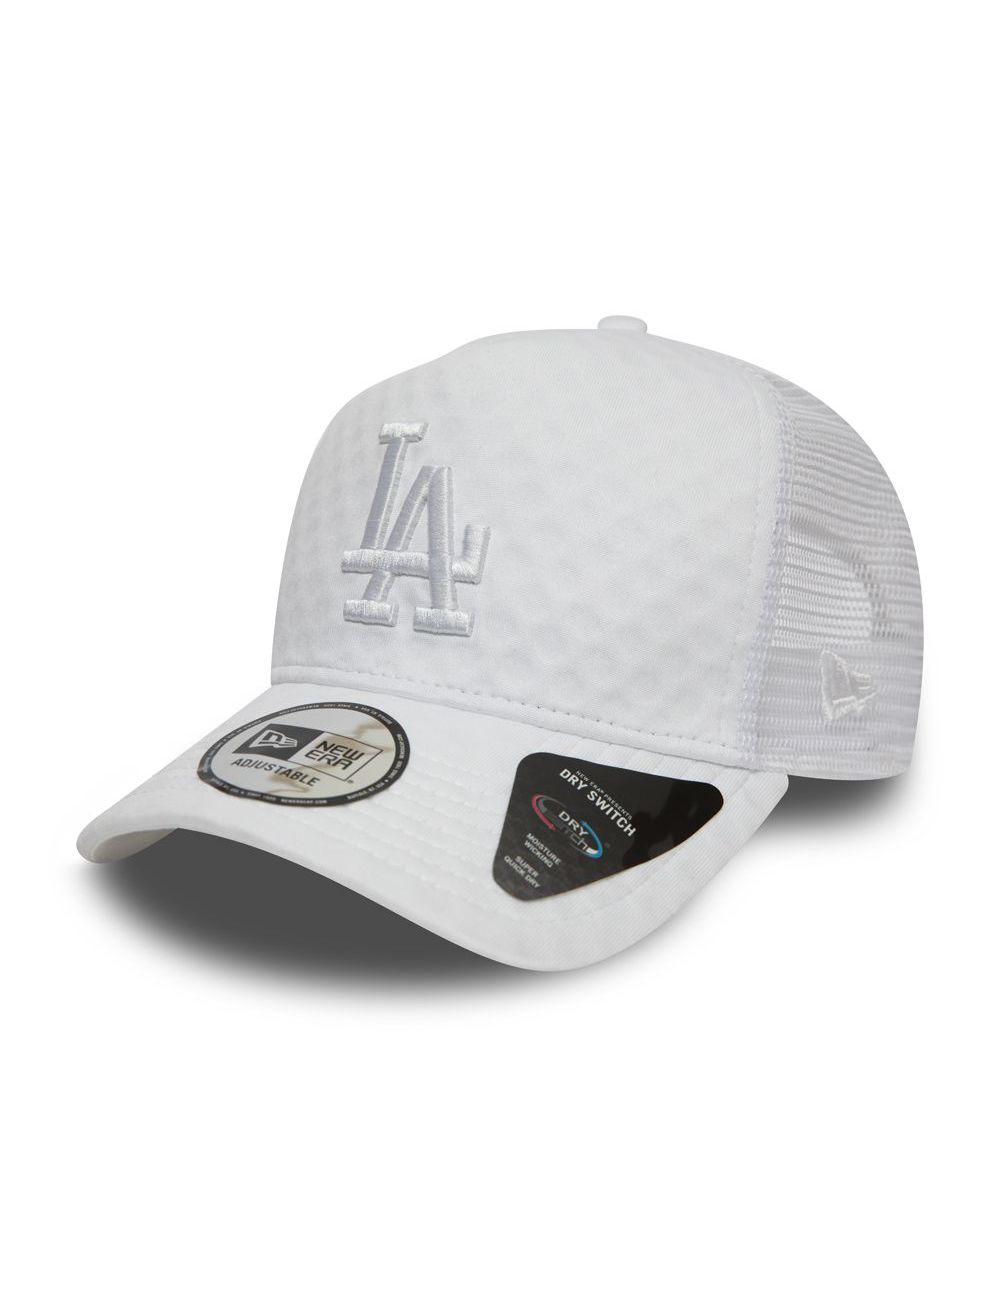 Casquette trucker Archives Spatiales Internationales